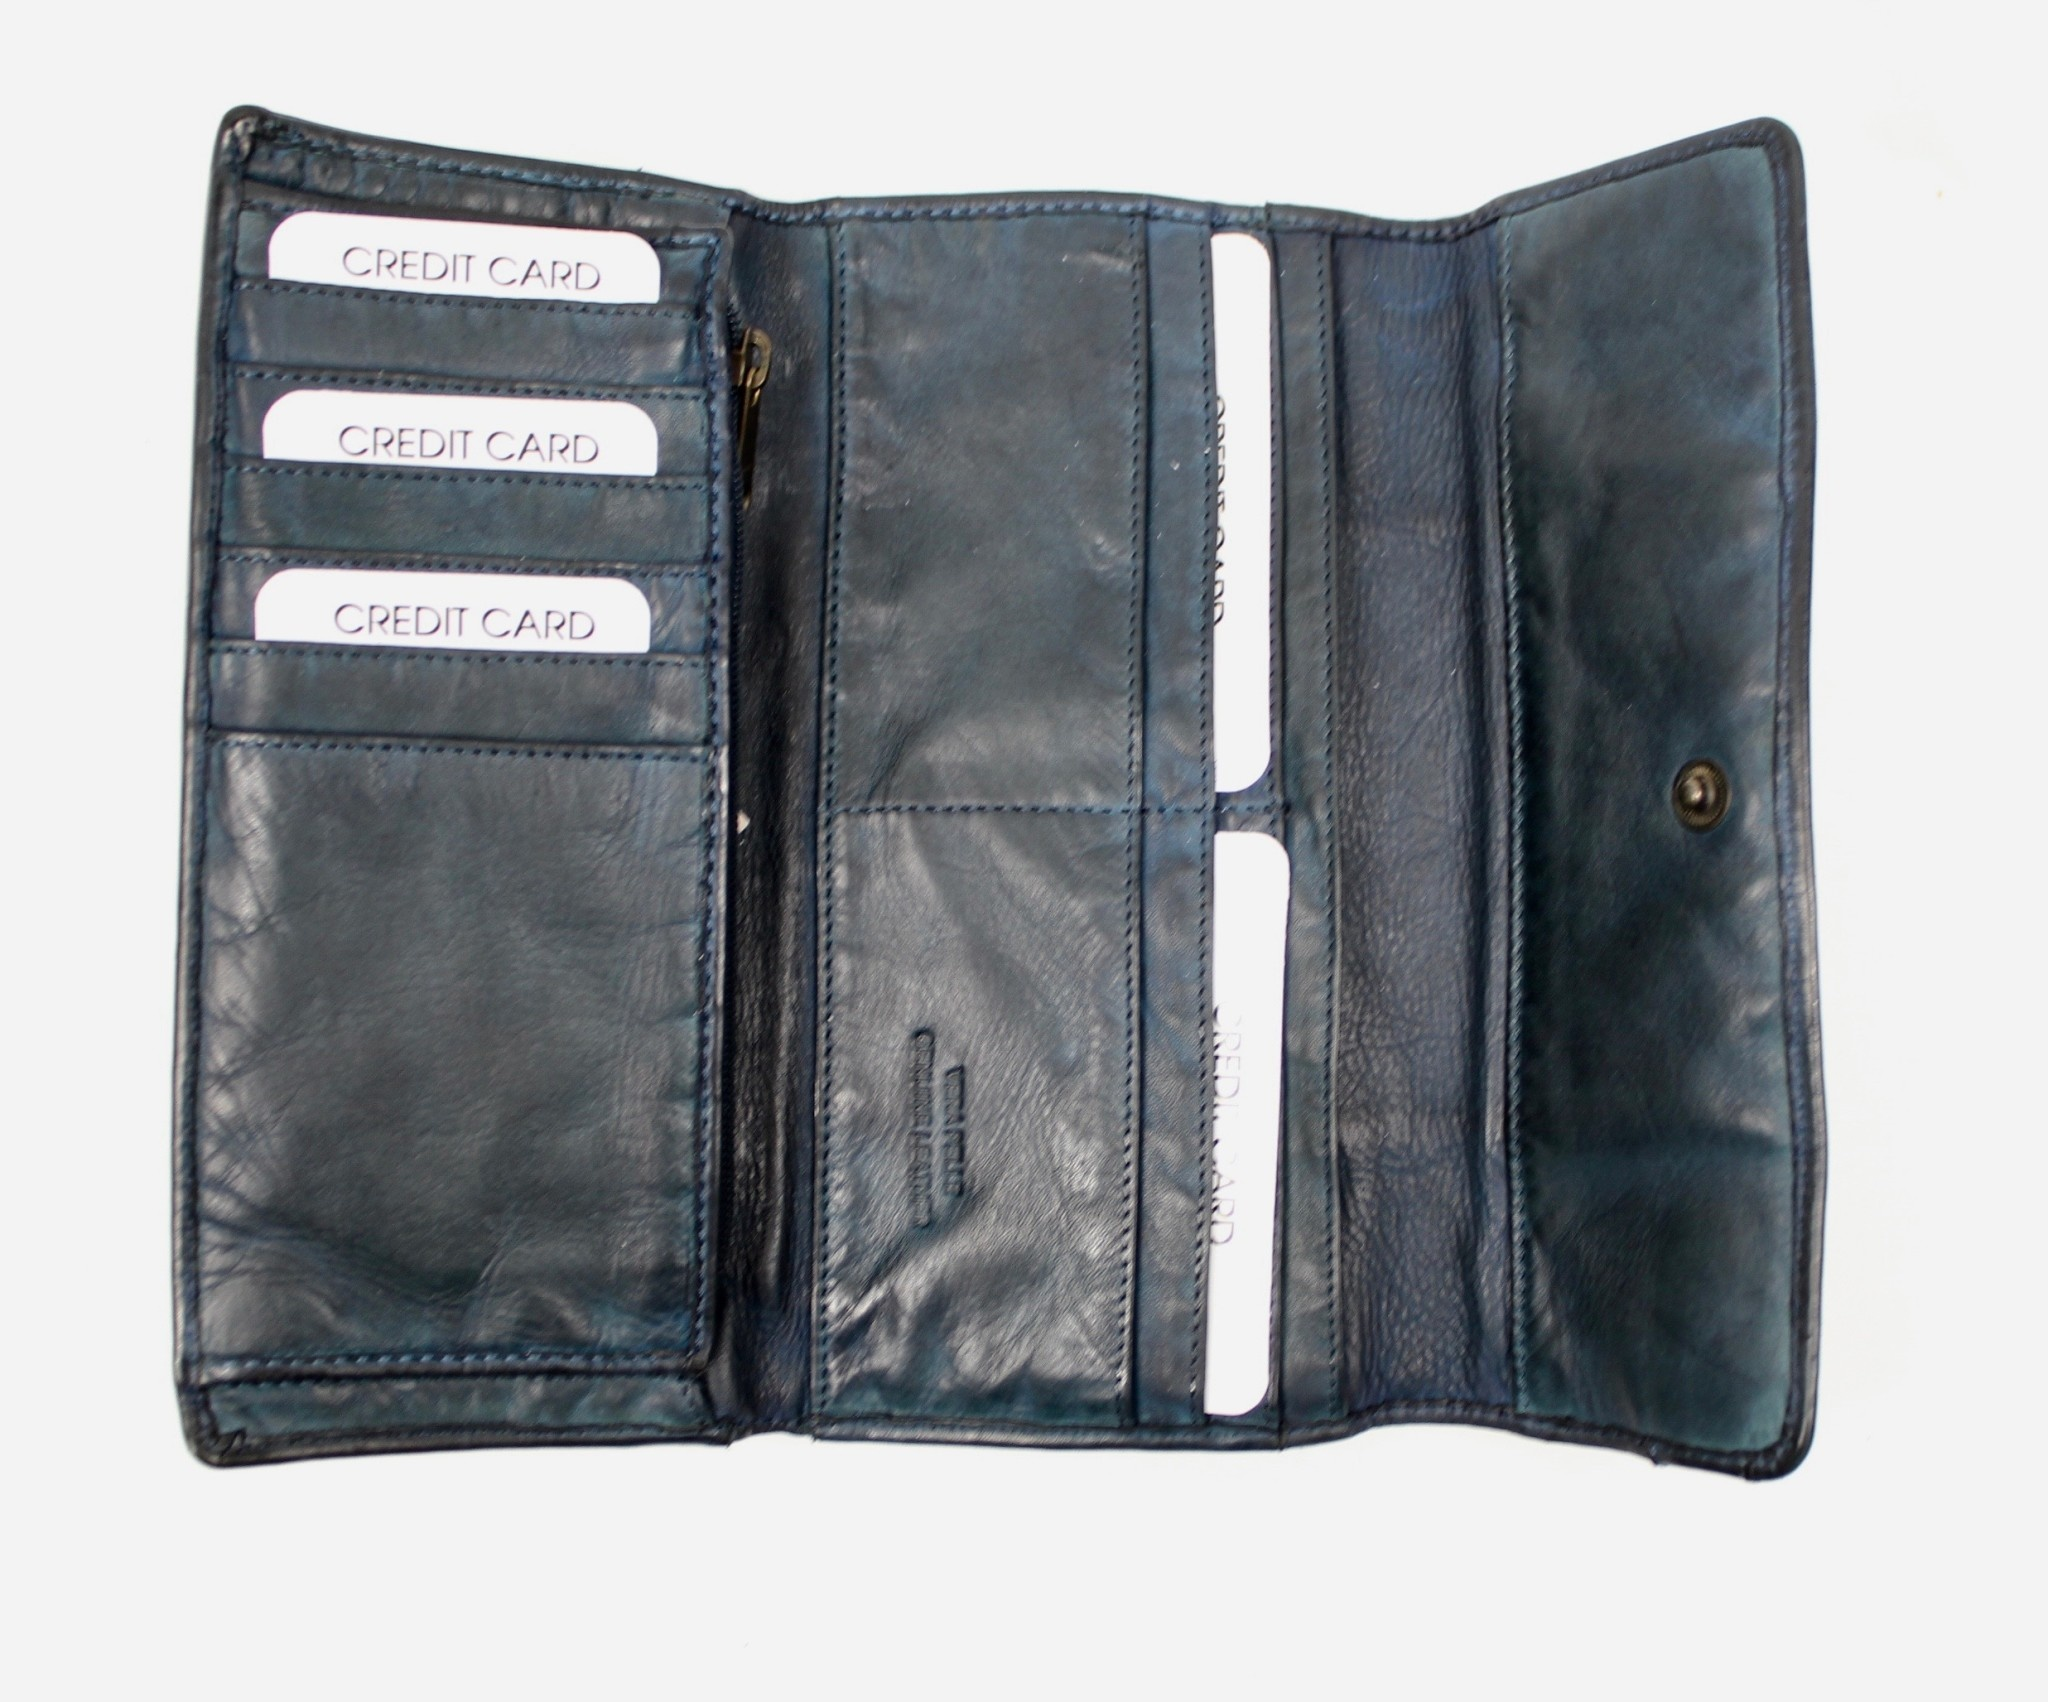 THE TREND THE TREND 4208245 Jeans Leather Wallet